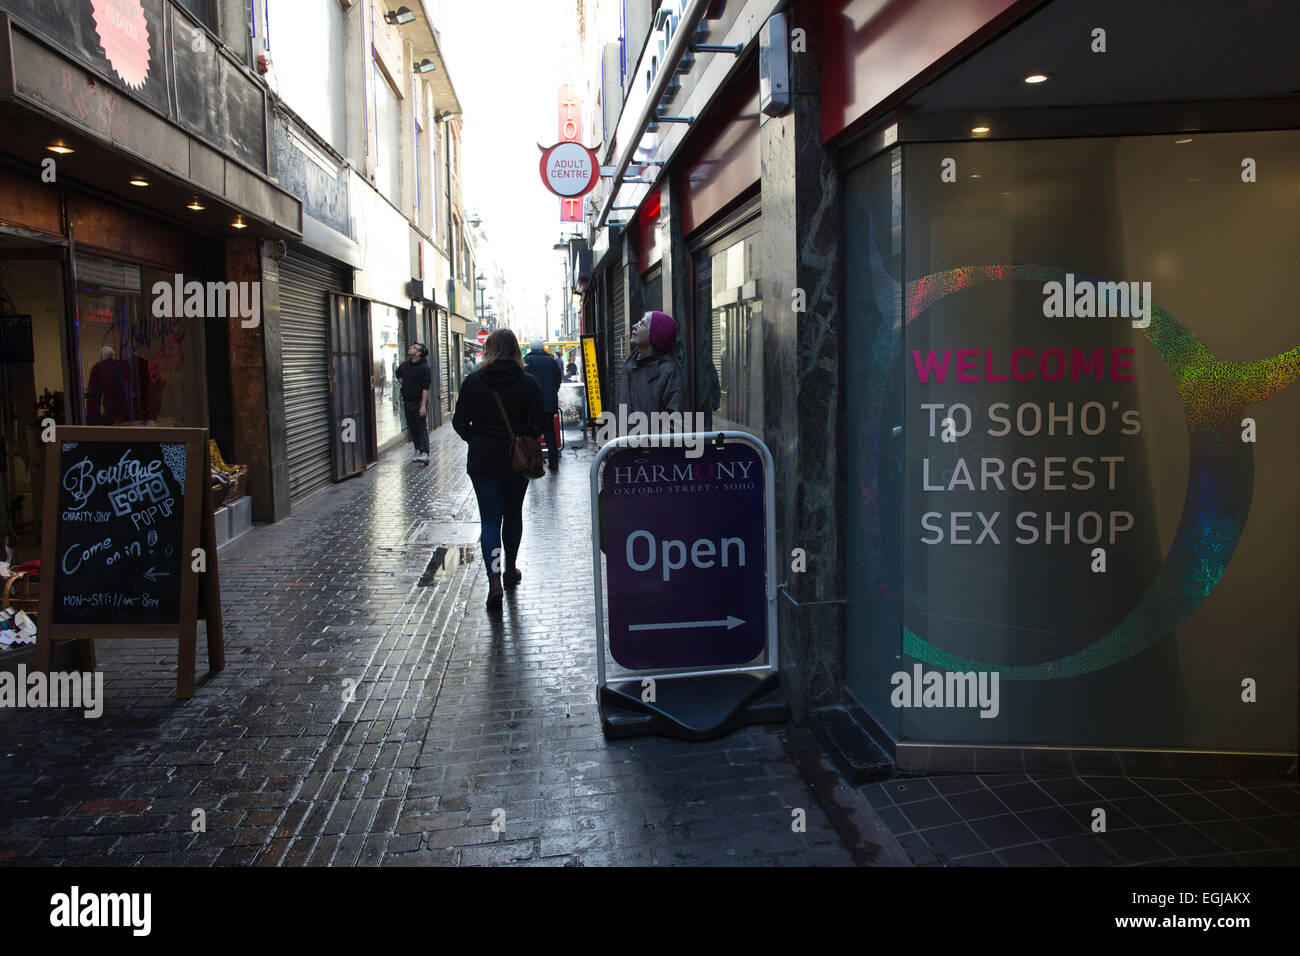 Adult shops in the uk photo 489